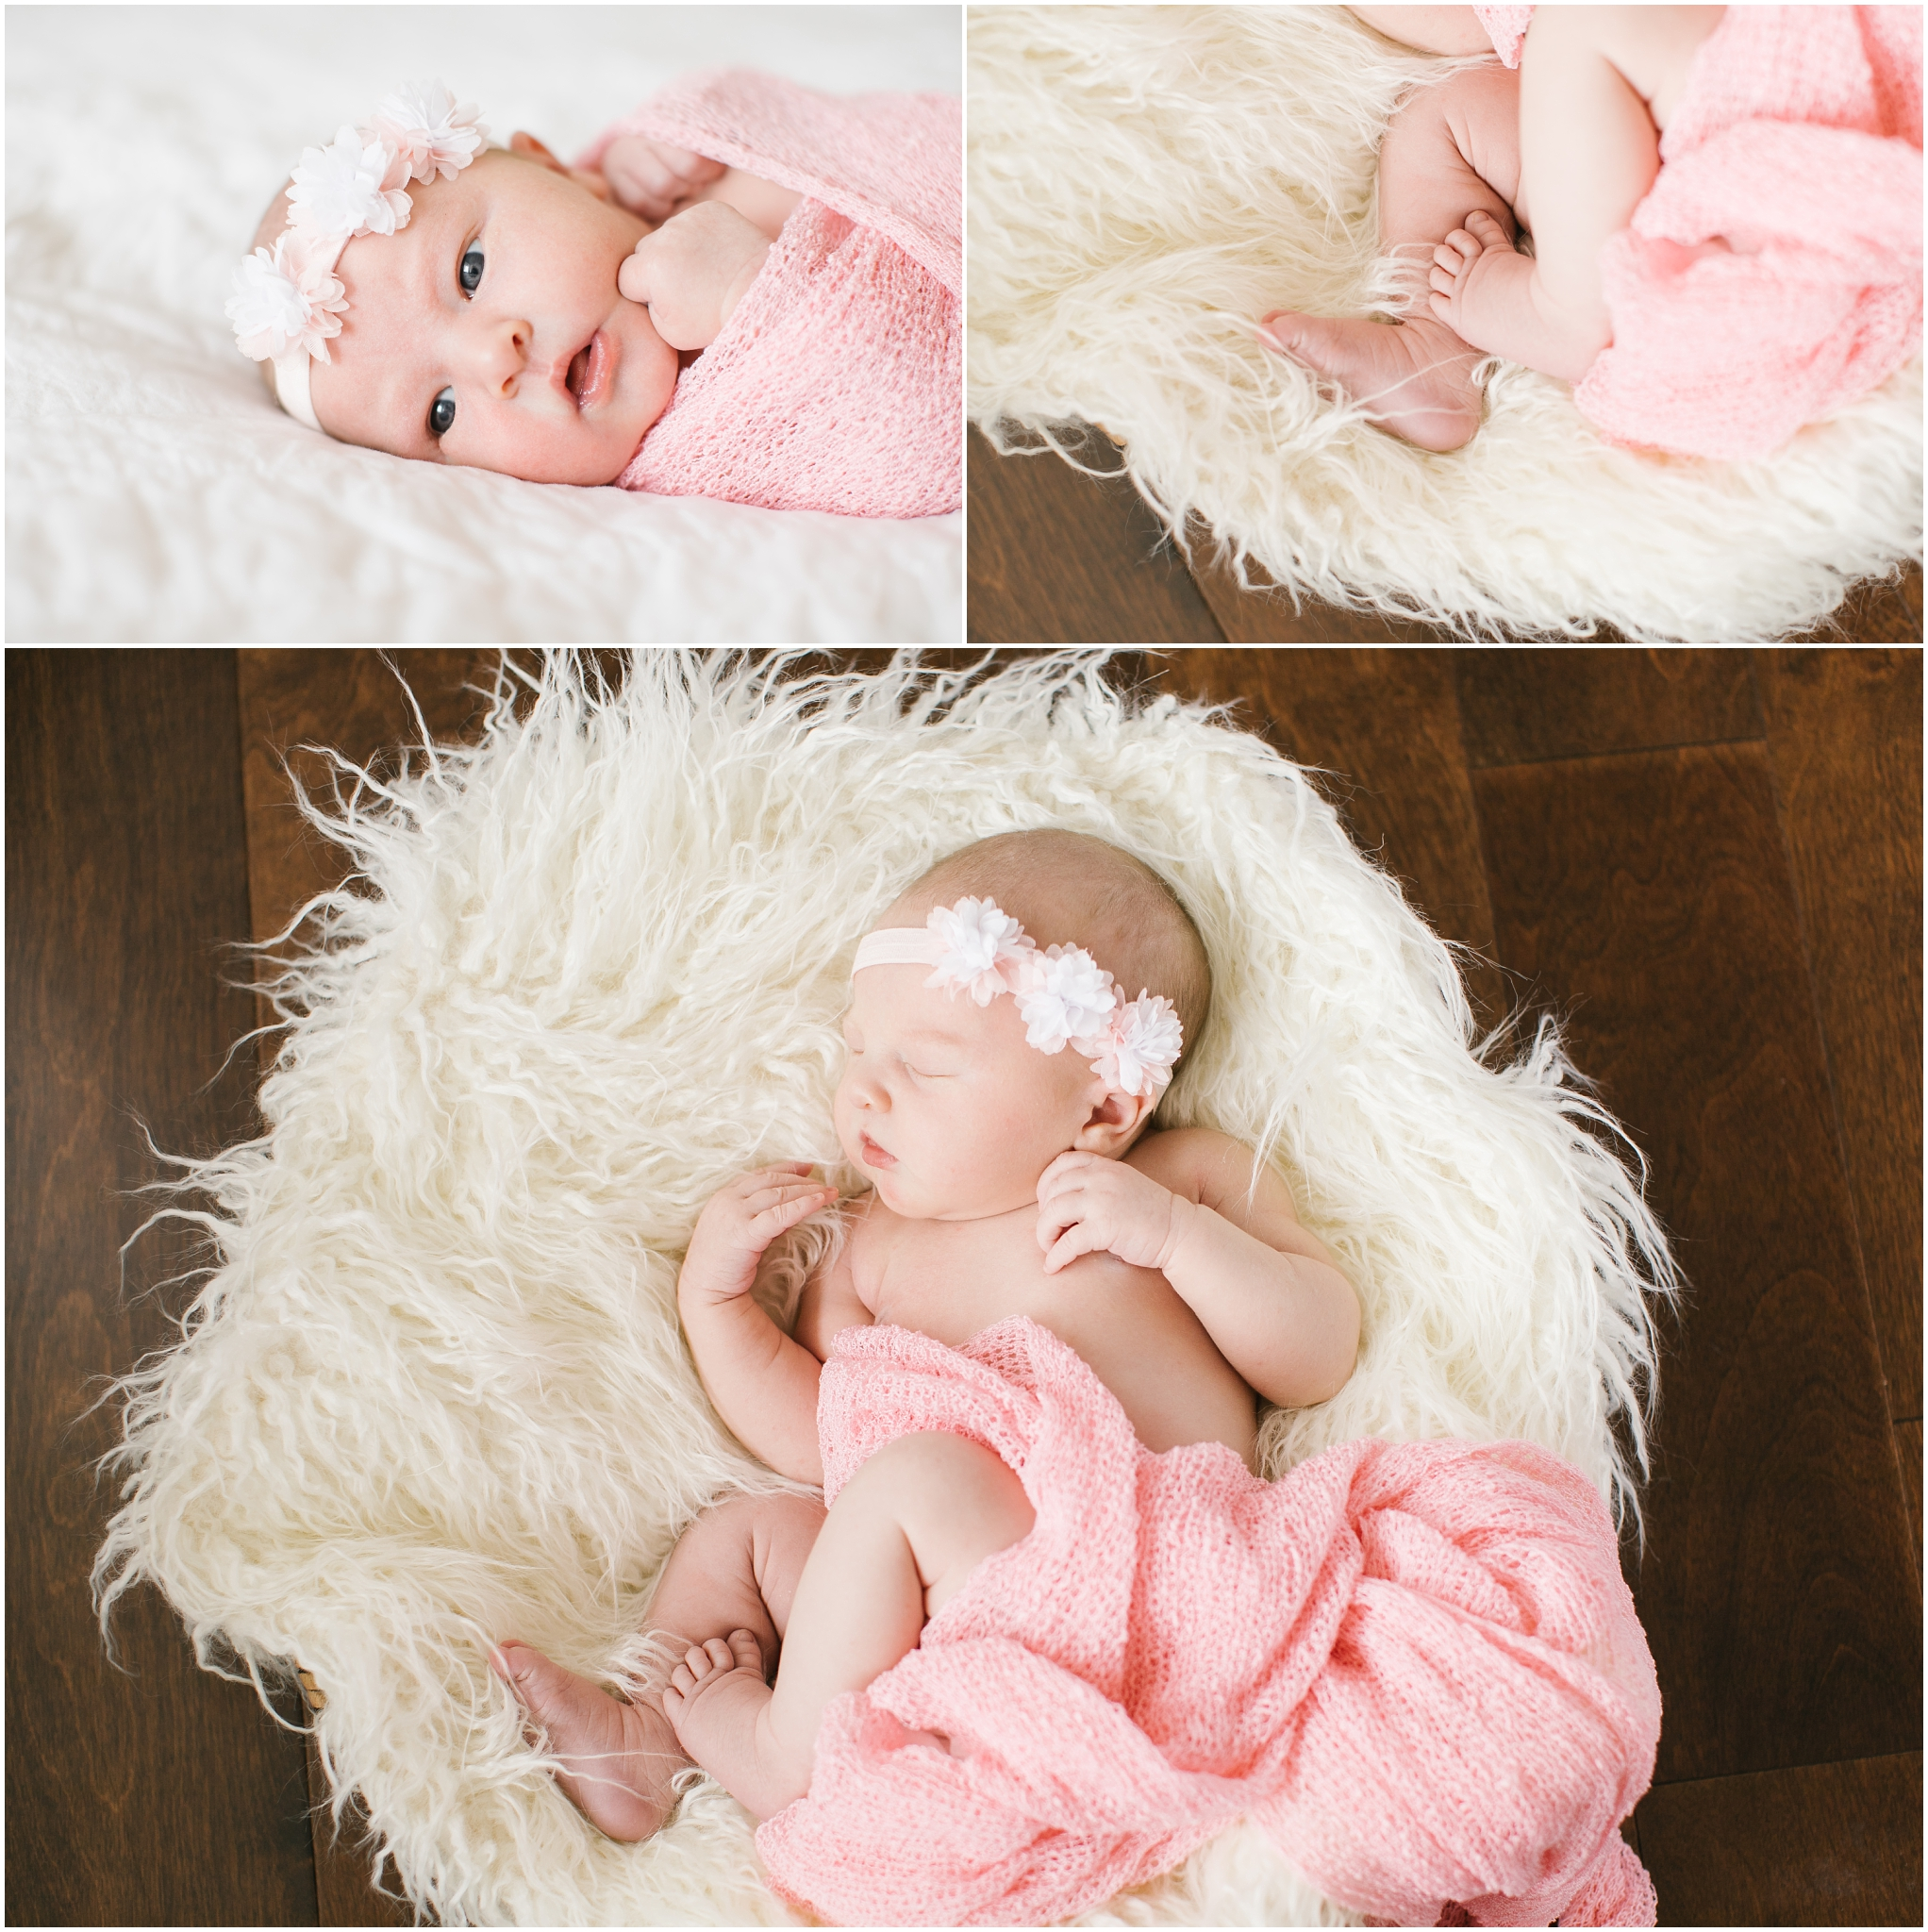 Autumn-57_Lizzie-B-Imagery-Utah-Family-Photographer-Central-Utah-Photographer-Utah-County-Newborn.jpg